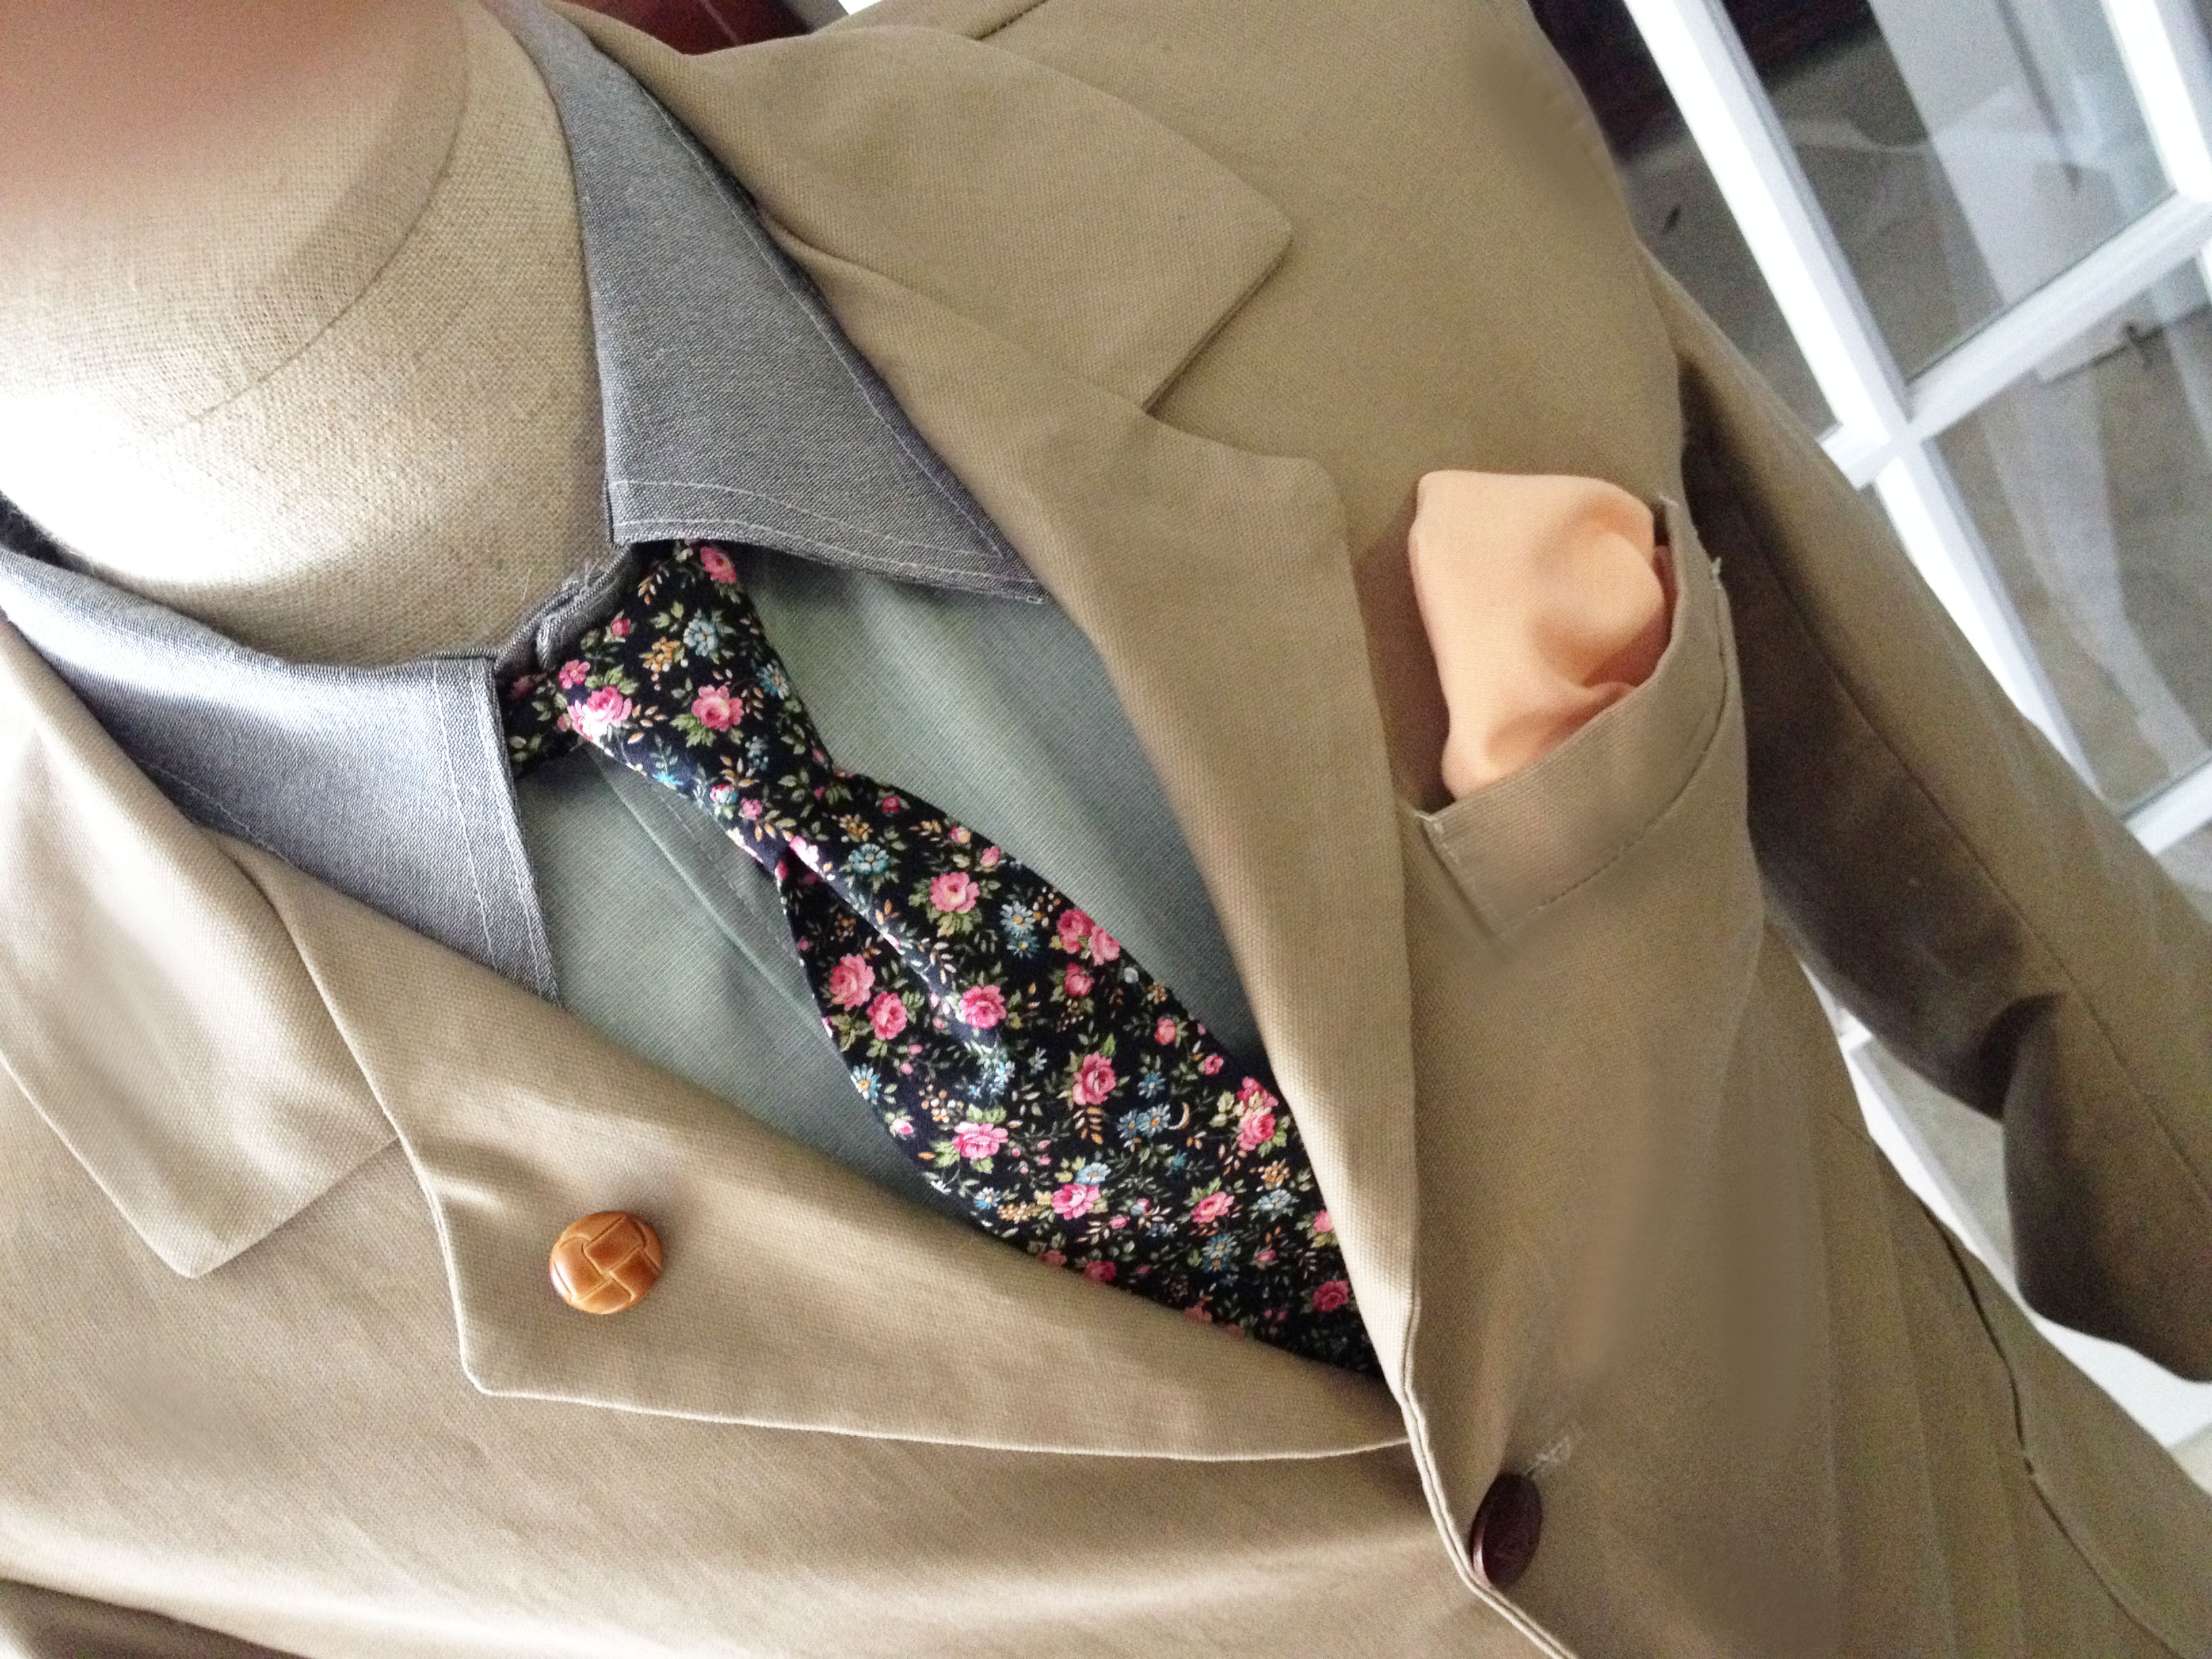 Laché ties and pocket sqaures